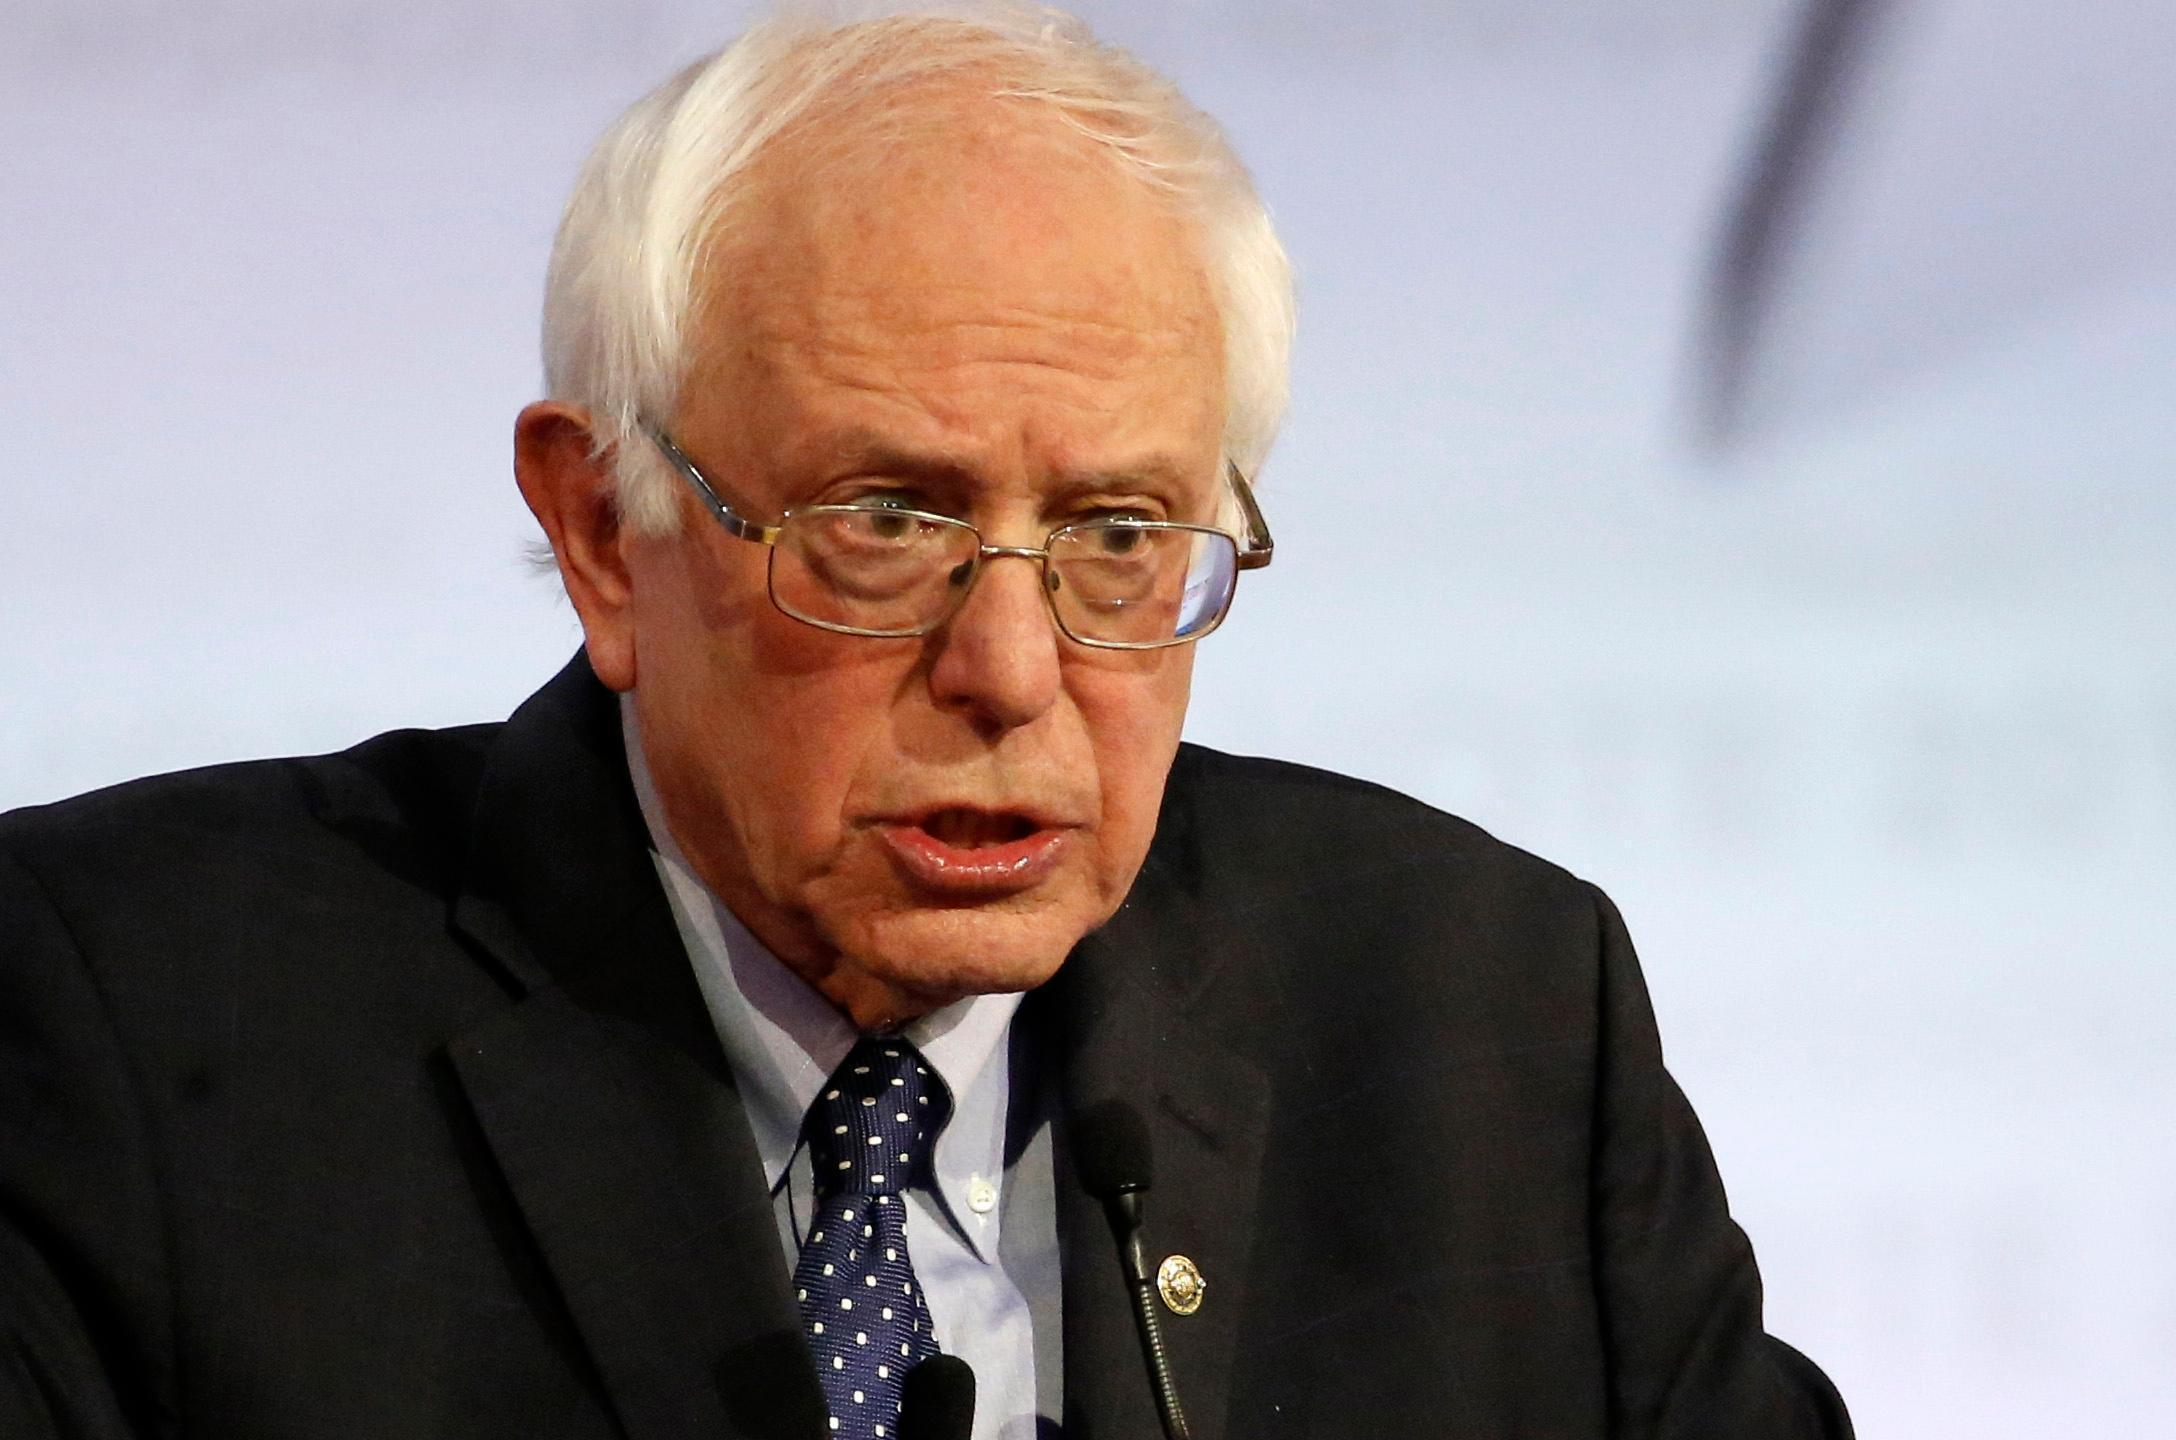 Bernie Sanders promises to free half a million prisoners in first term